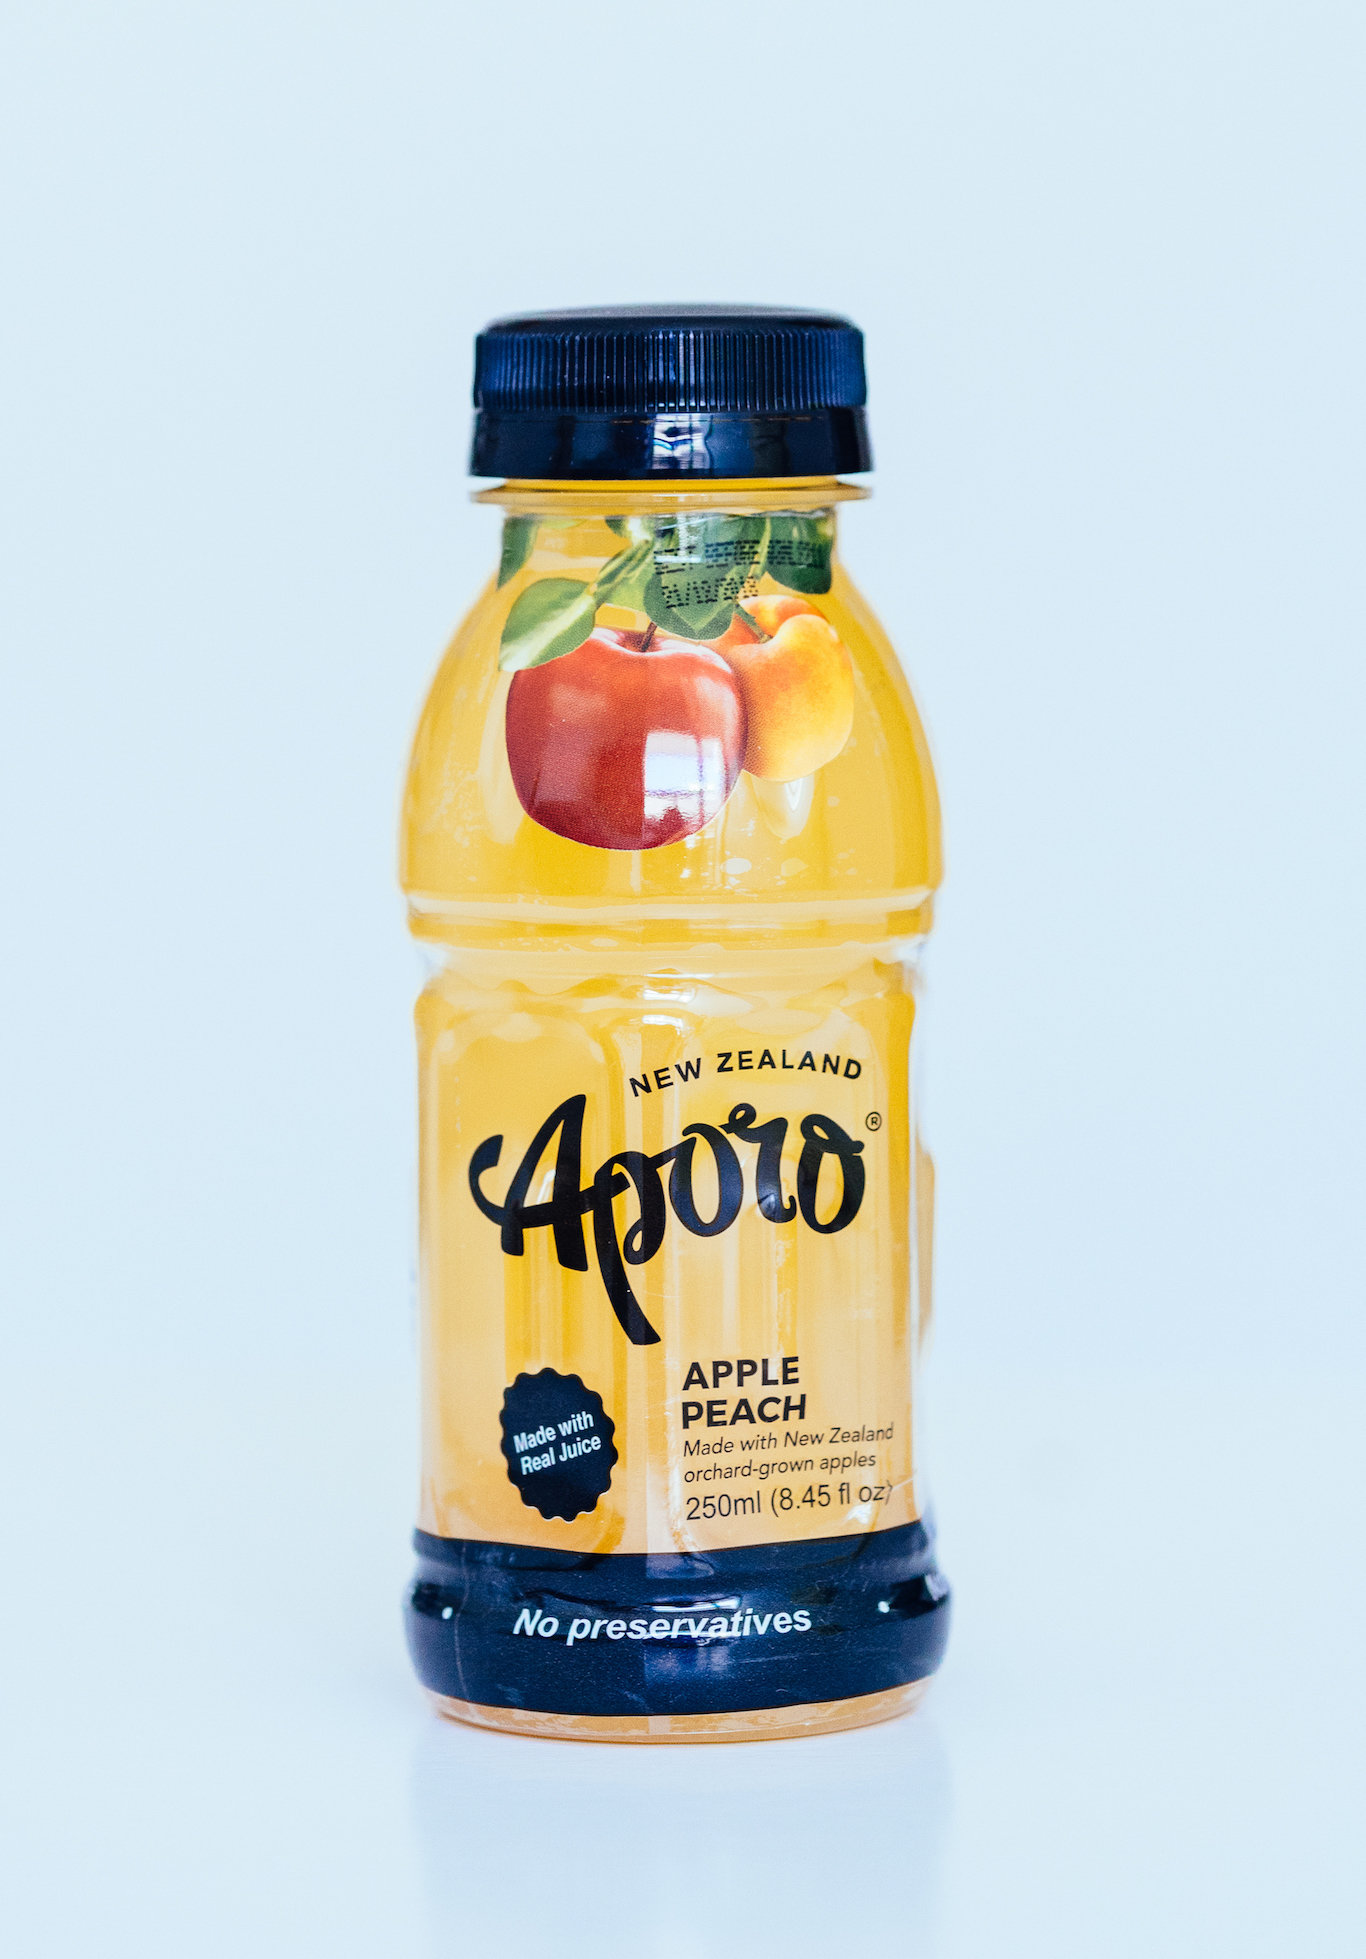 APORO Apple Peach 00035